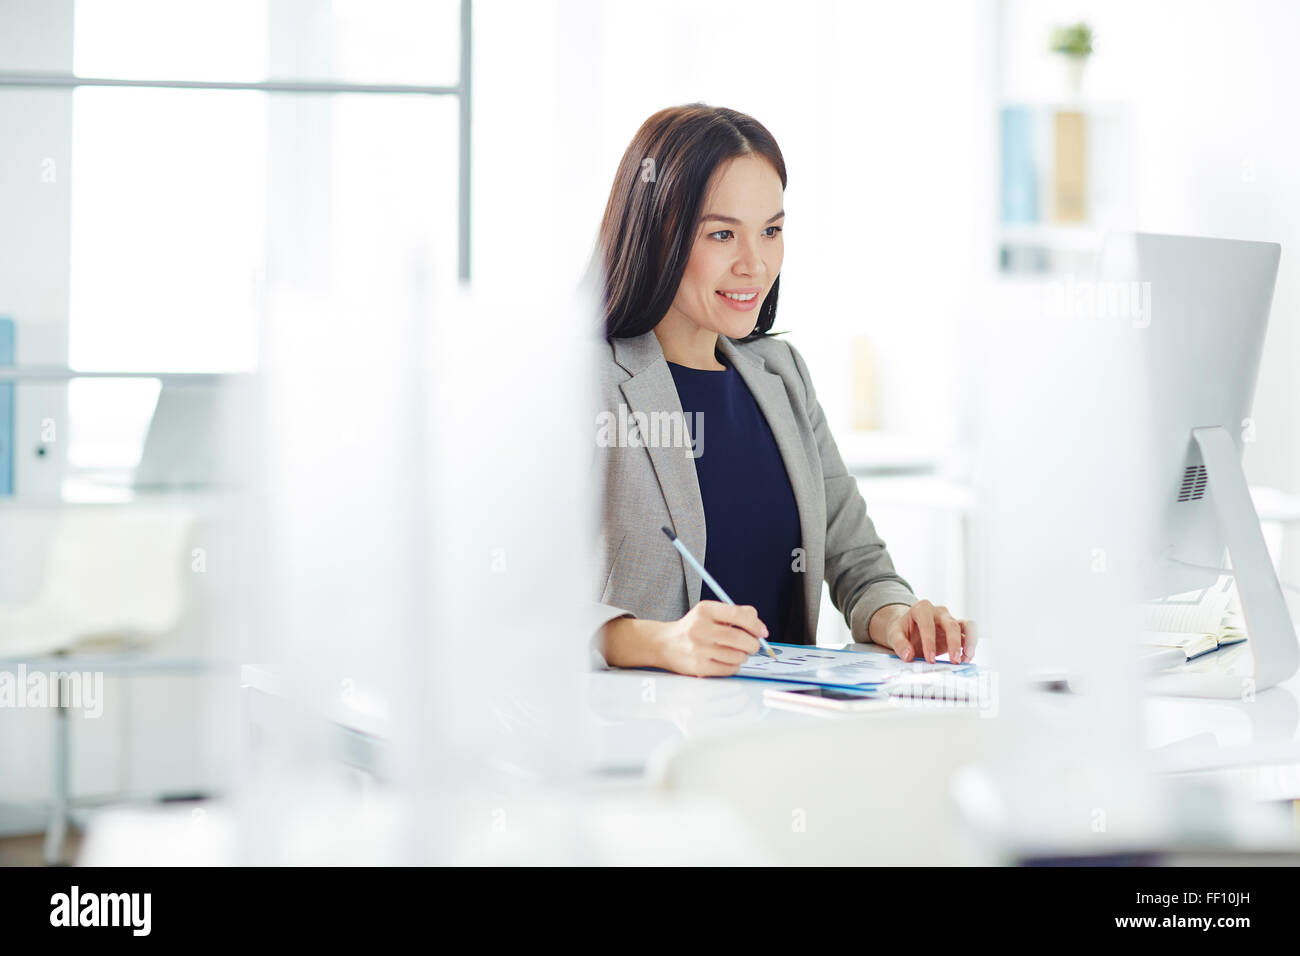 Pretty secretary analyzing data and looking at monitor in office - Stock Image